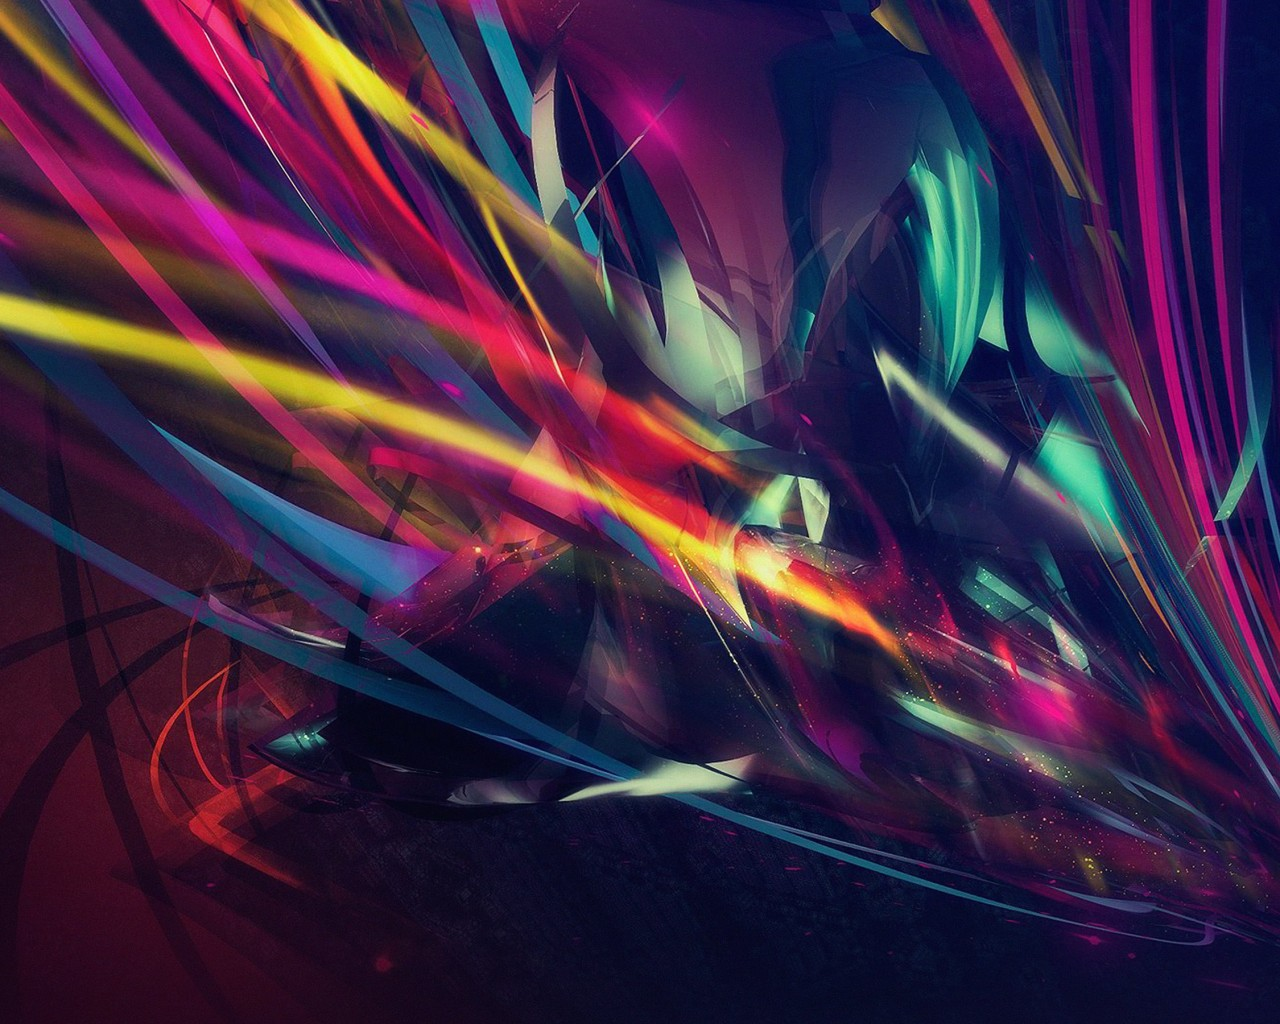 Abstract Multi Color Lines Wallpaper for Desktop 1280x1024